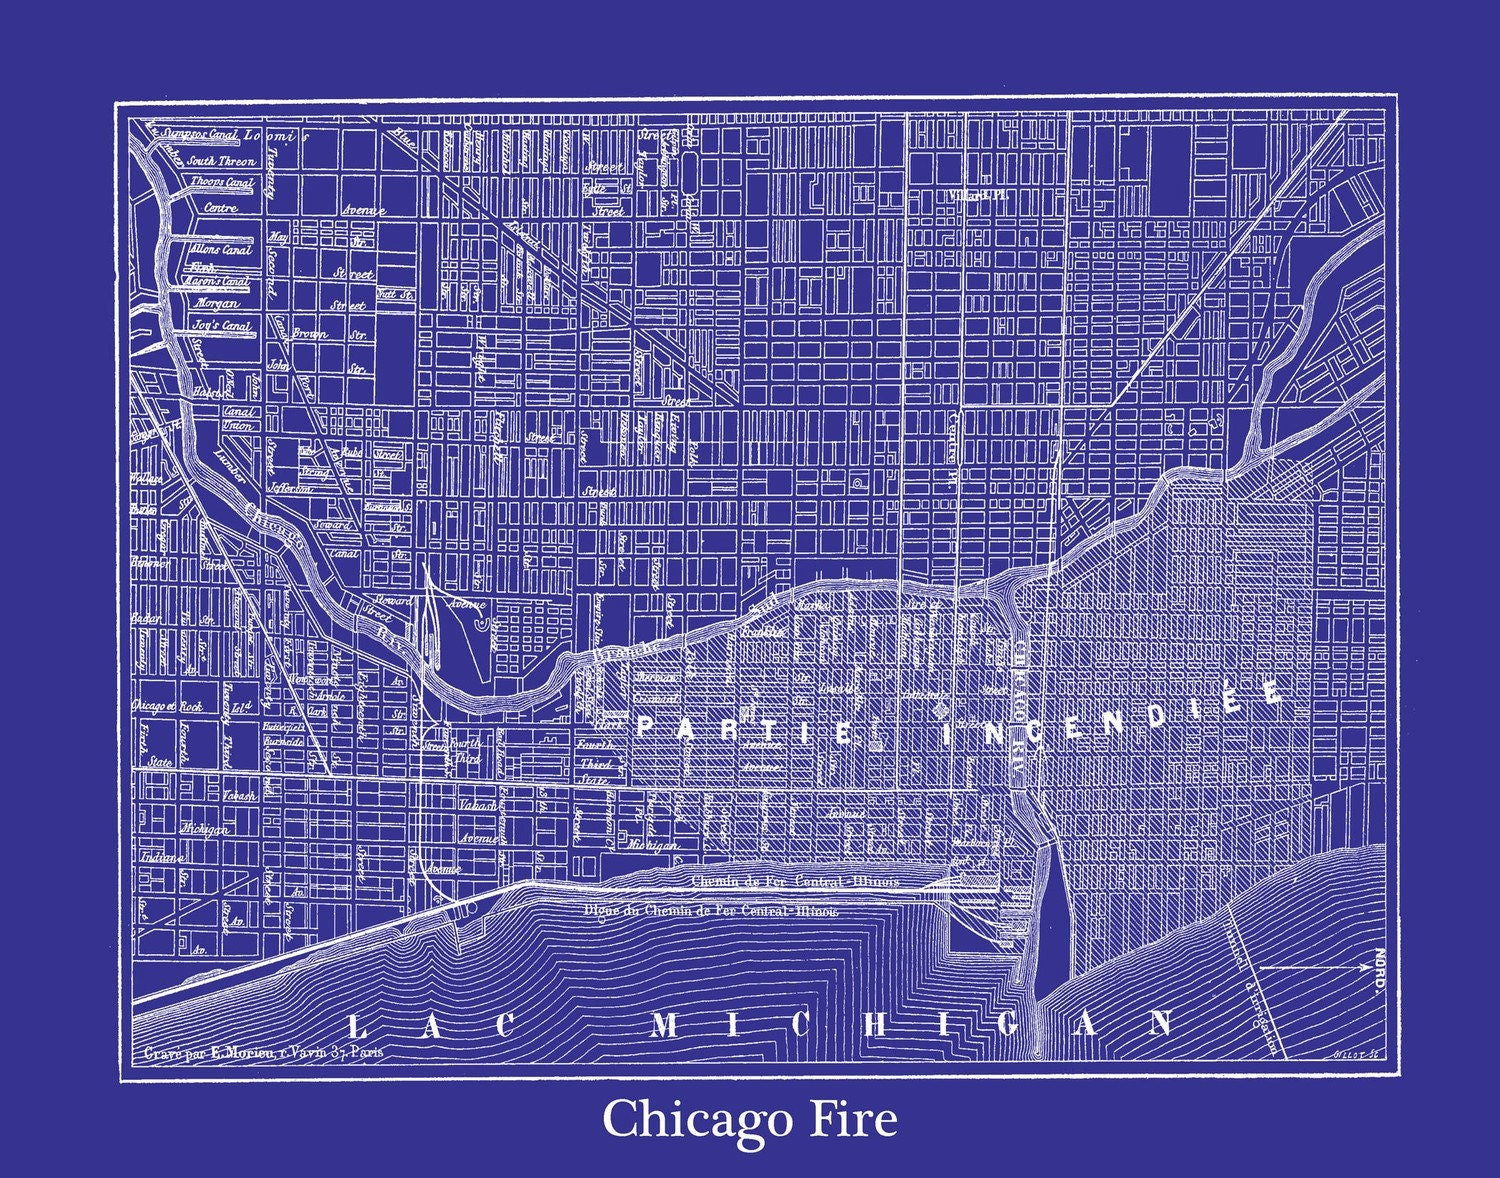 Chicago Fire Street Map Vintage Print Poster Blueprint Blue